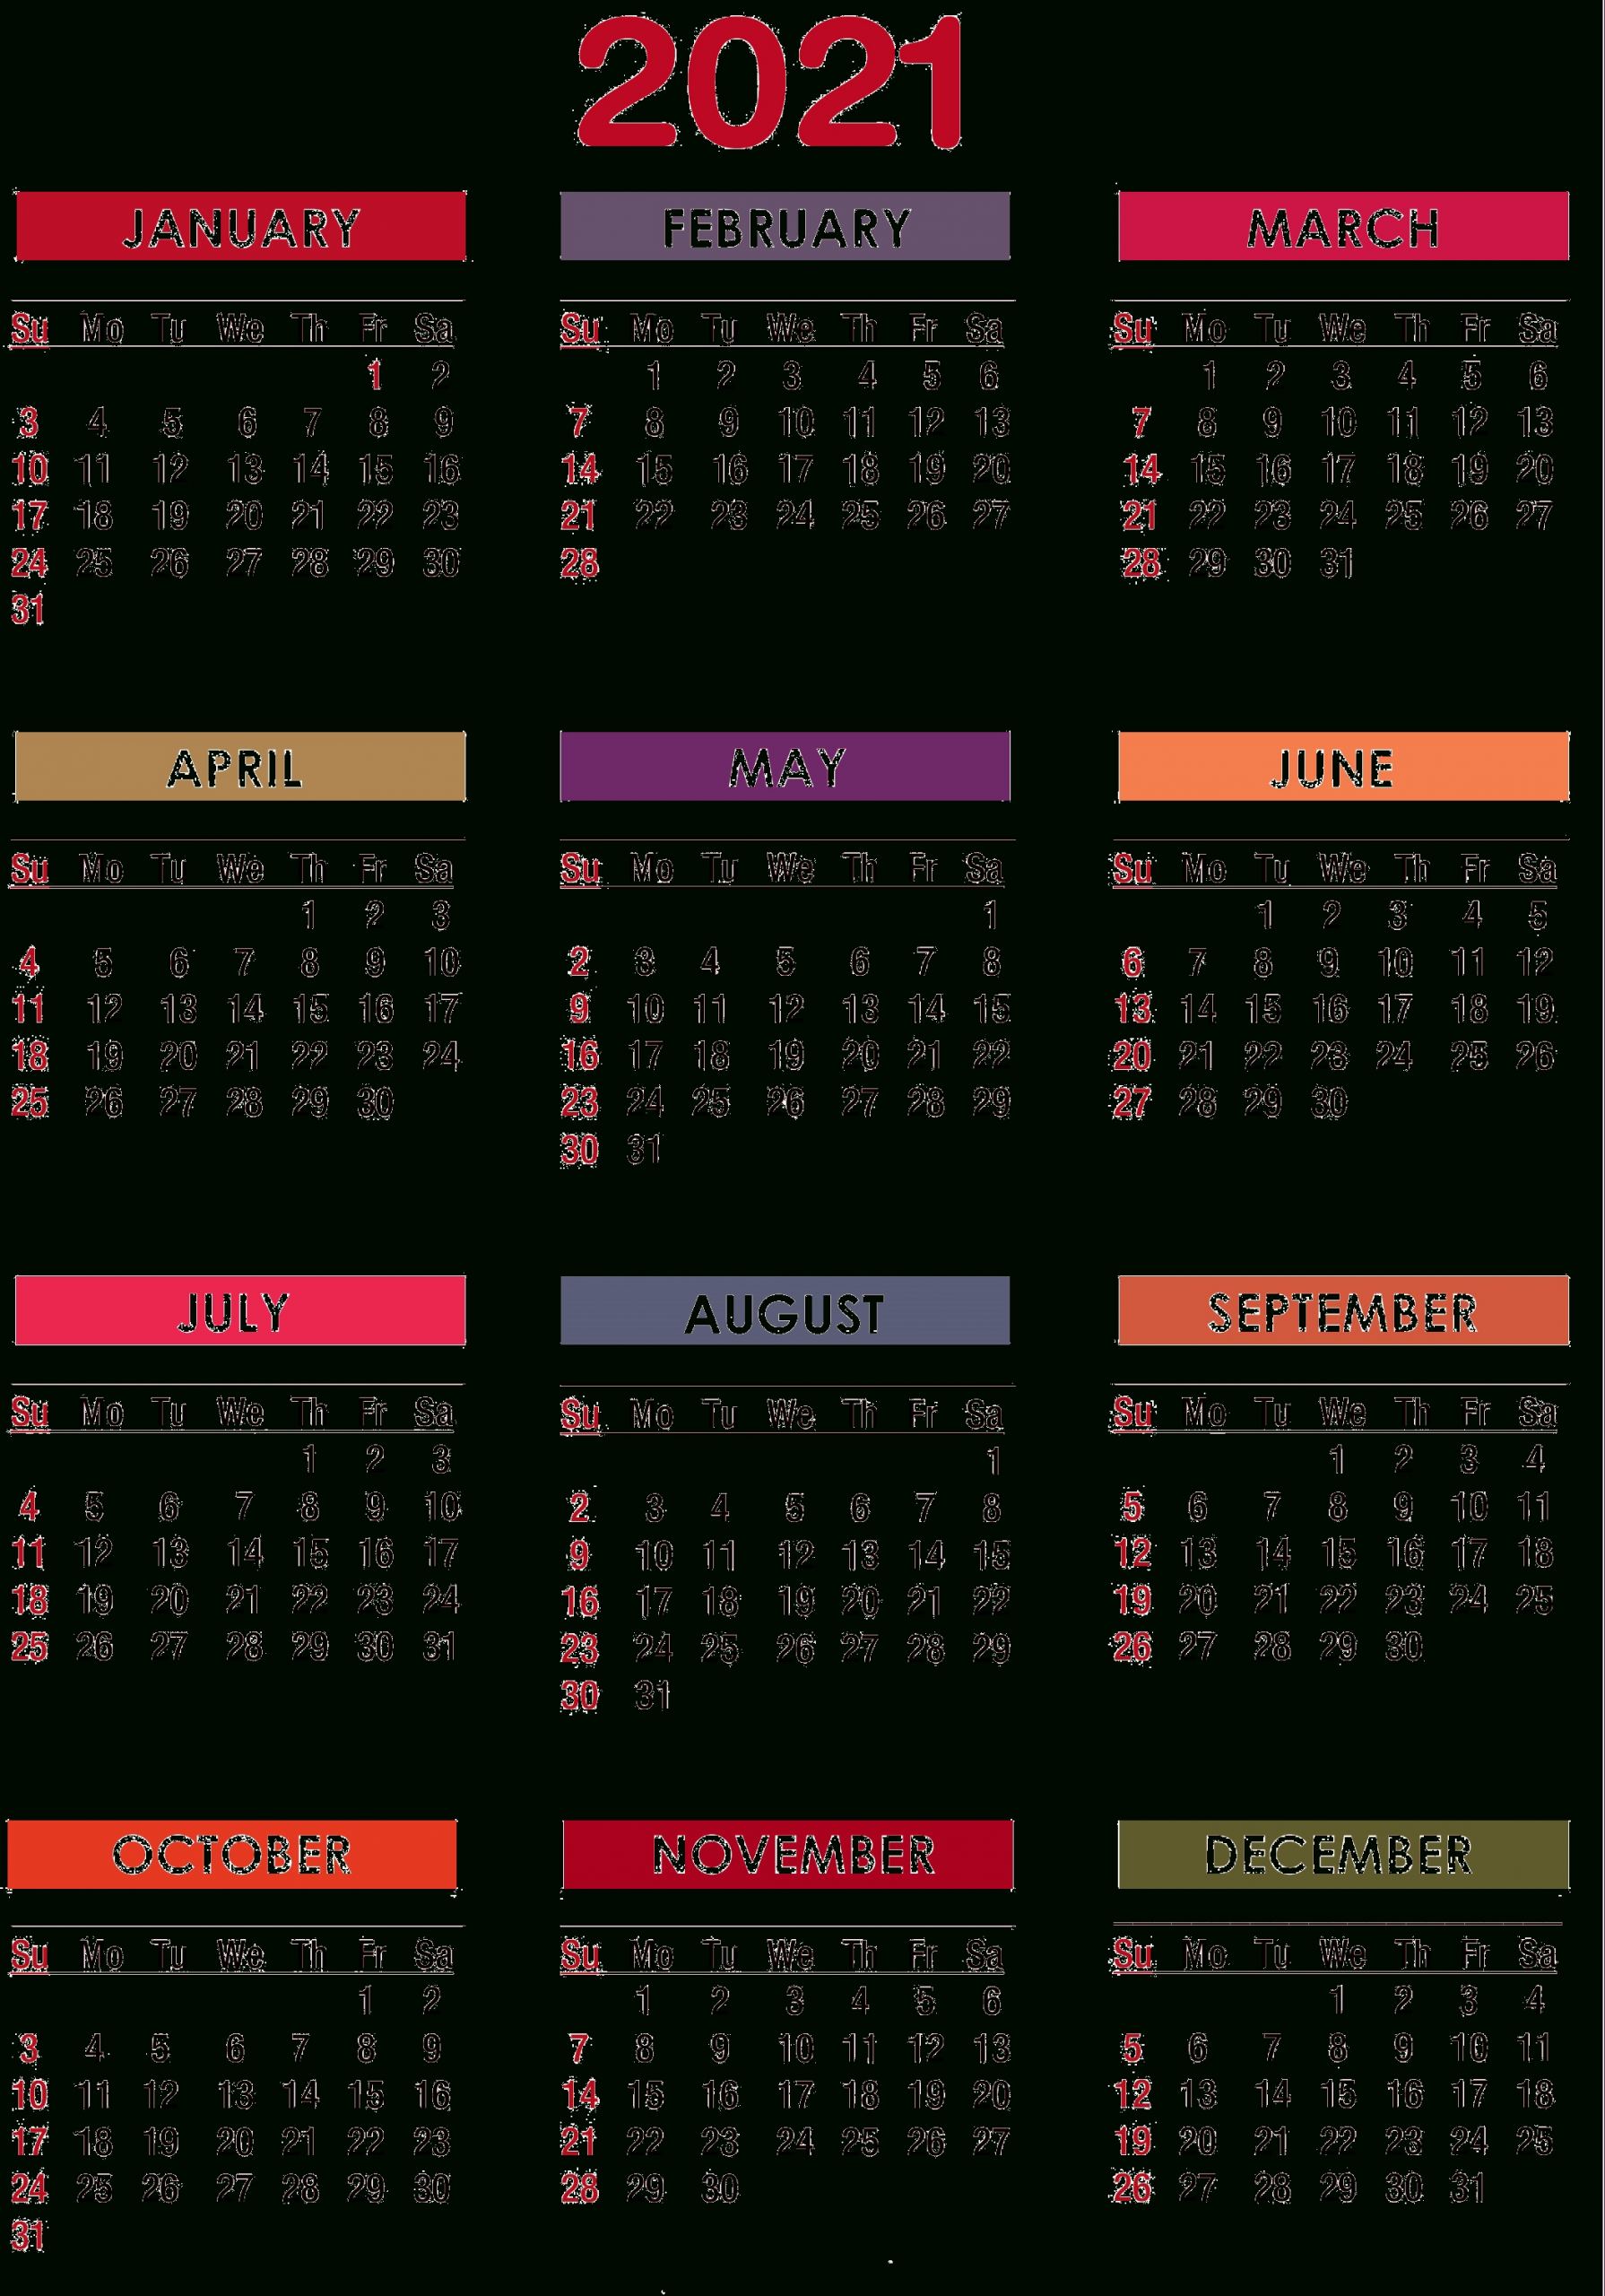 2021 Calendar Png Transparent Images | Png All  Calendar 2021 With Gregorian Dates